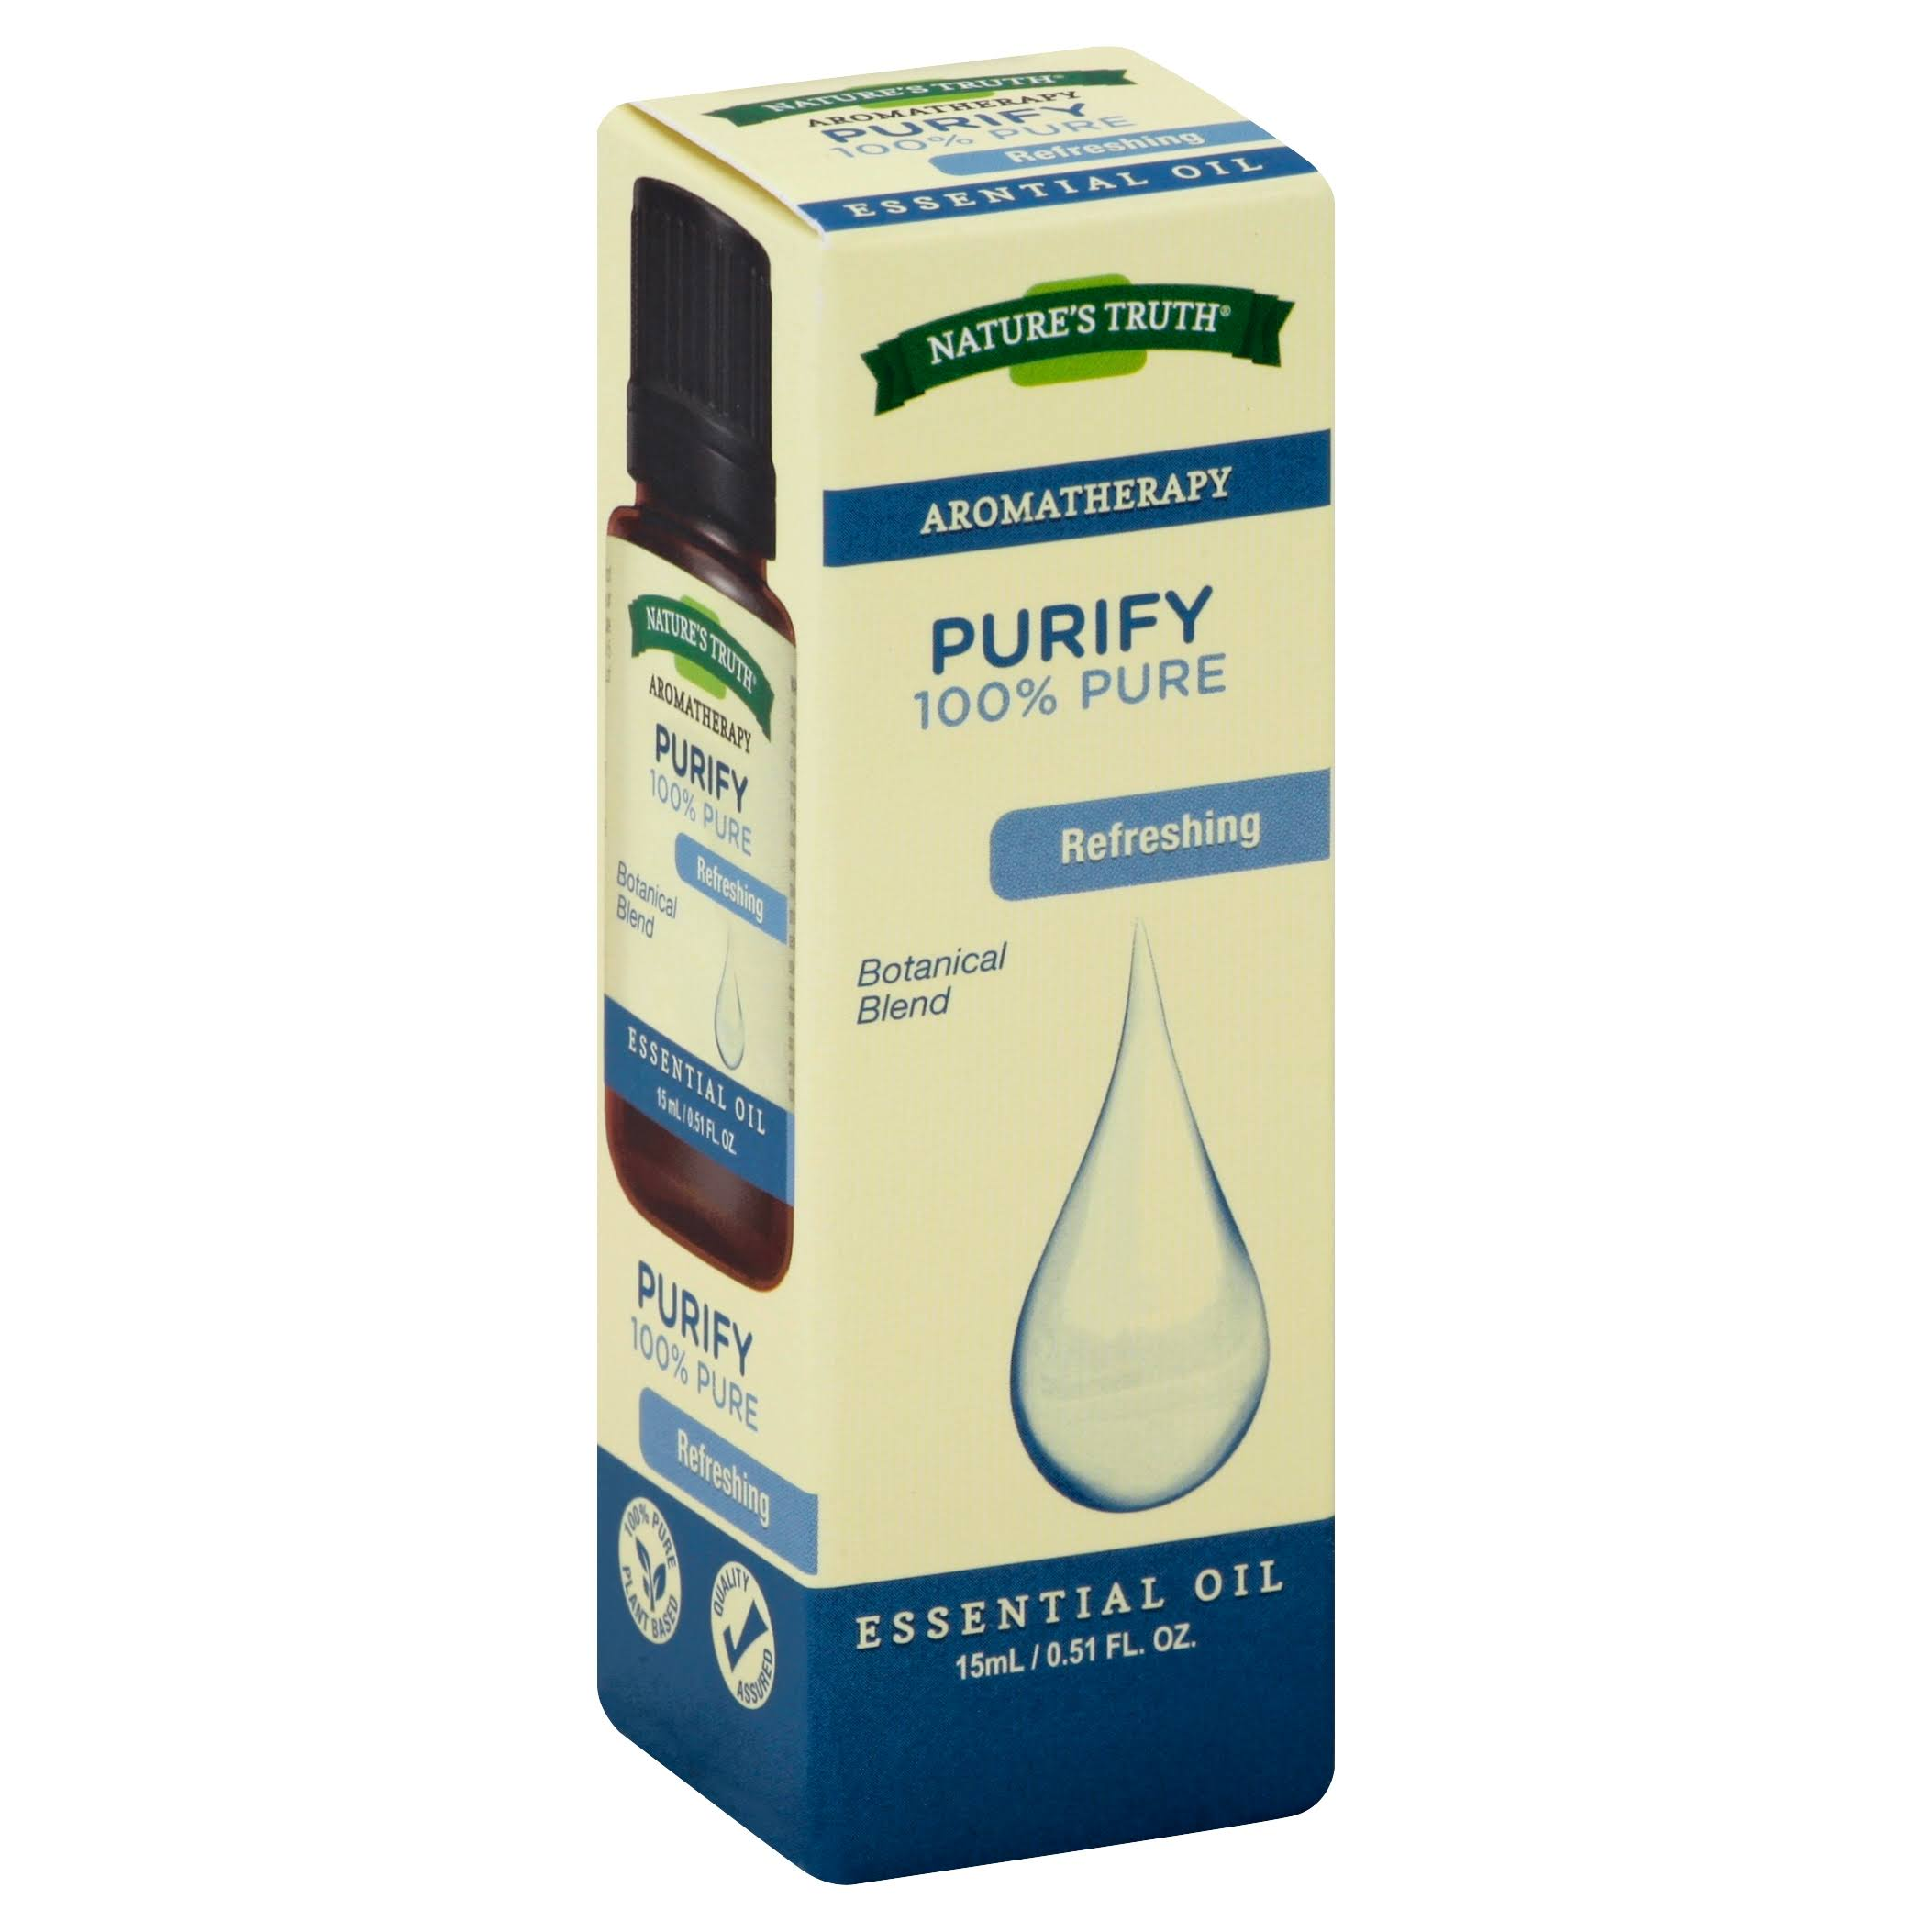 Nature's Truth Purify 100% Pure Essential Oil - 15ml